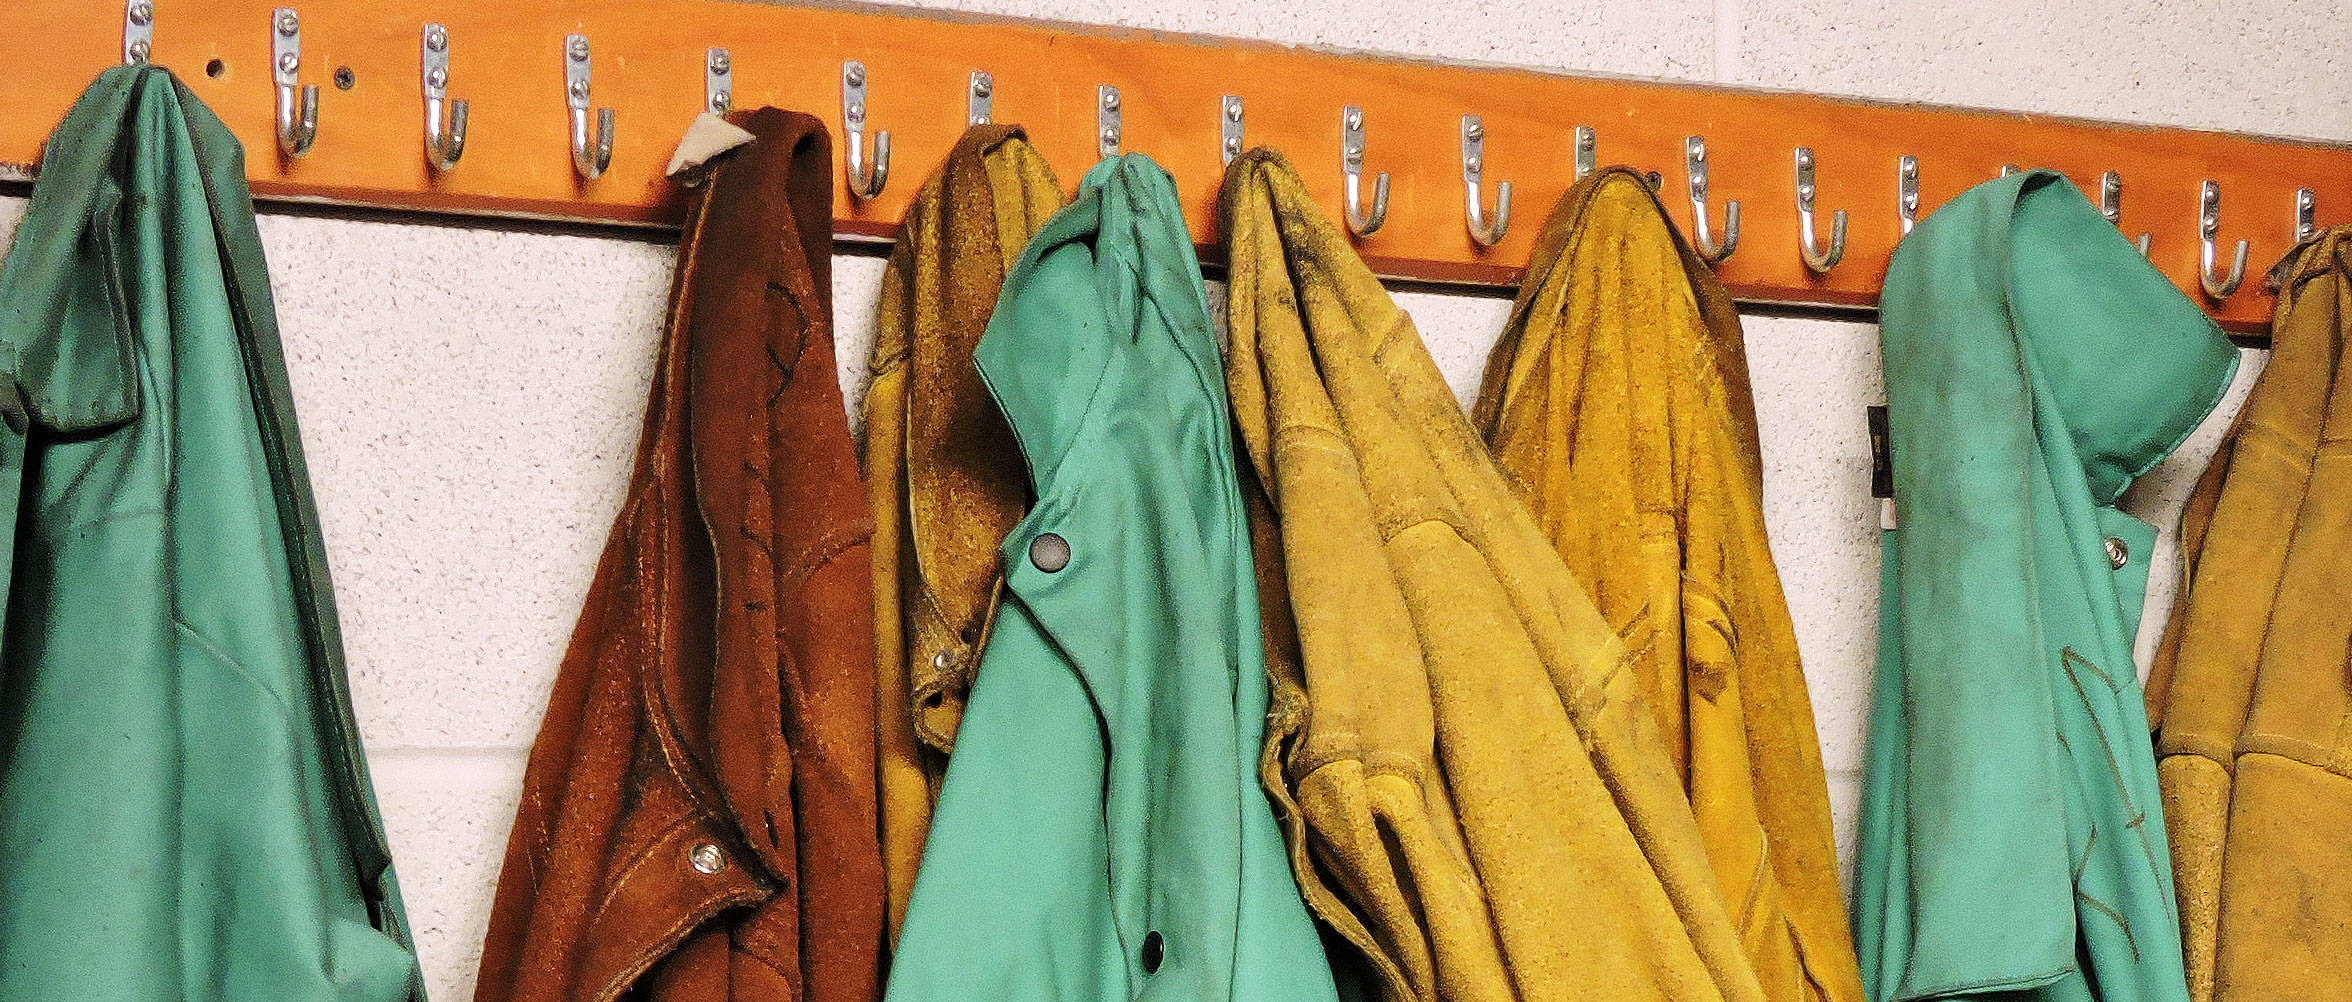 Jackets hanging on a coat rack